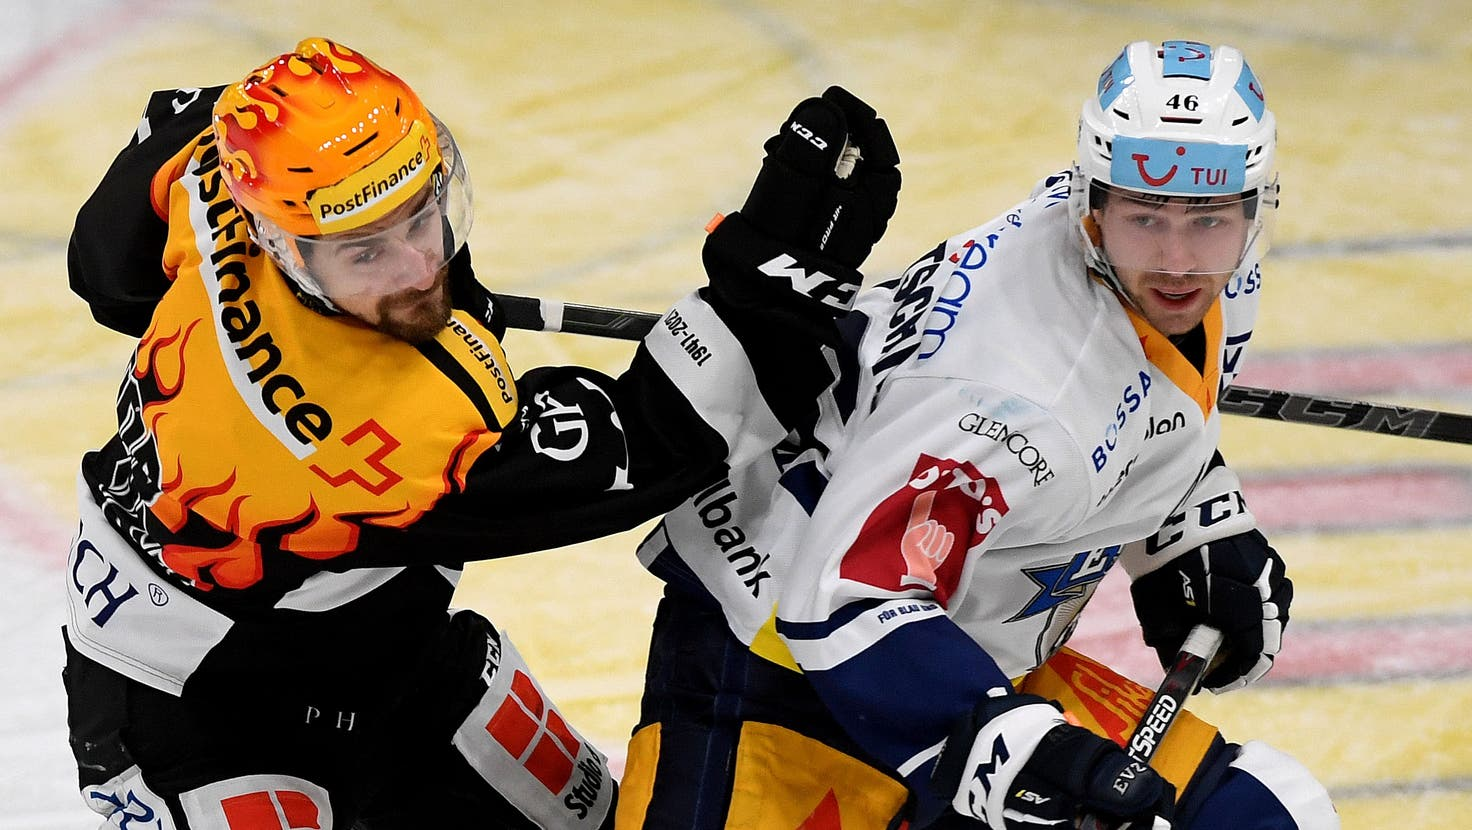 Lugano's Top Scorer Mark Arcobello, left, fights for the puck with Zug's player Lino Martschini, during the preliminary round game of National League Swiss Championship between HC Lugano and EV Zug, at the Corner Arena stadium in Lugano, on Friday, 15 January 2021. (PostFinance/KEYSTONE/Ti-Press/Samuel Golay) (Samuel Golay / KEYSTONE/TI-PRESS)